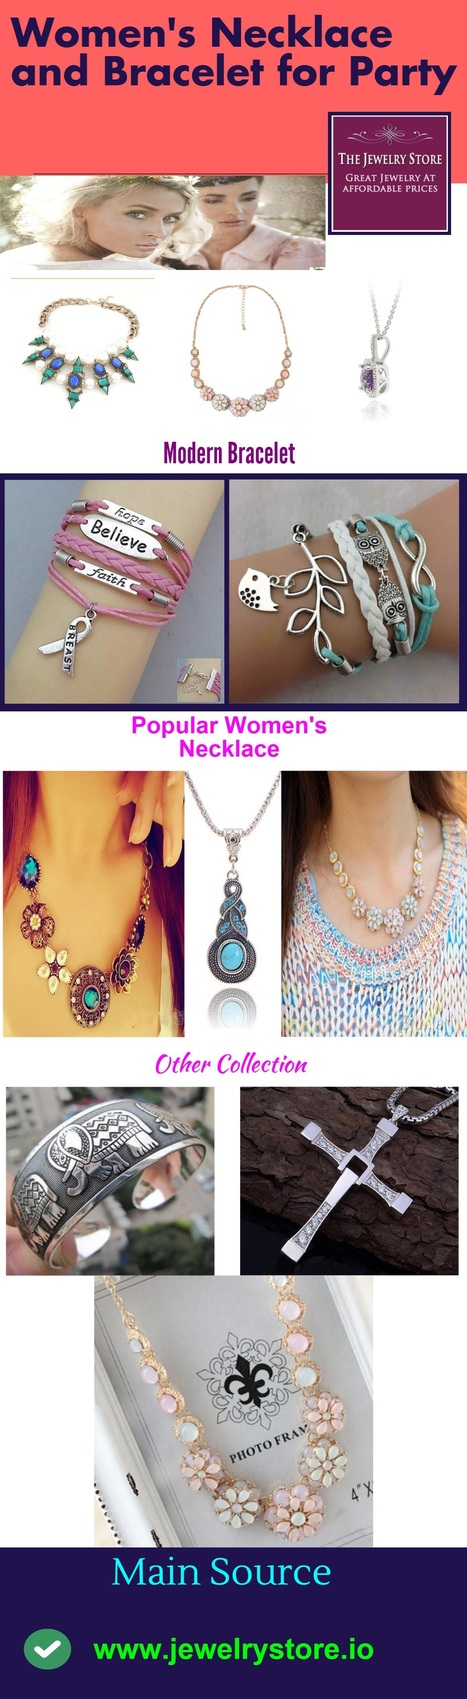 Women's Necklace and Bracelet for Party   Online Shopping   Scoop.it